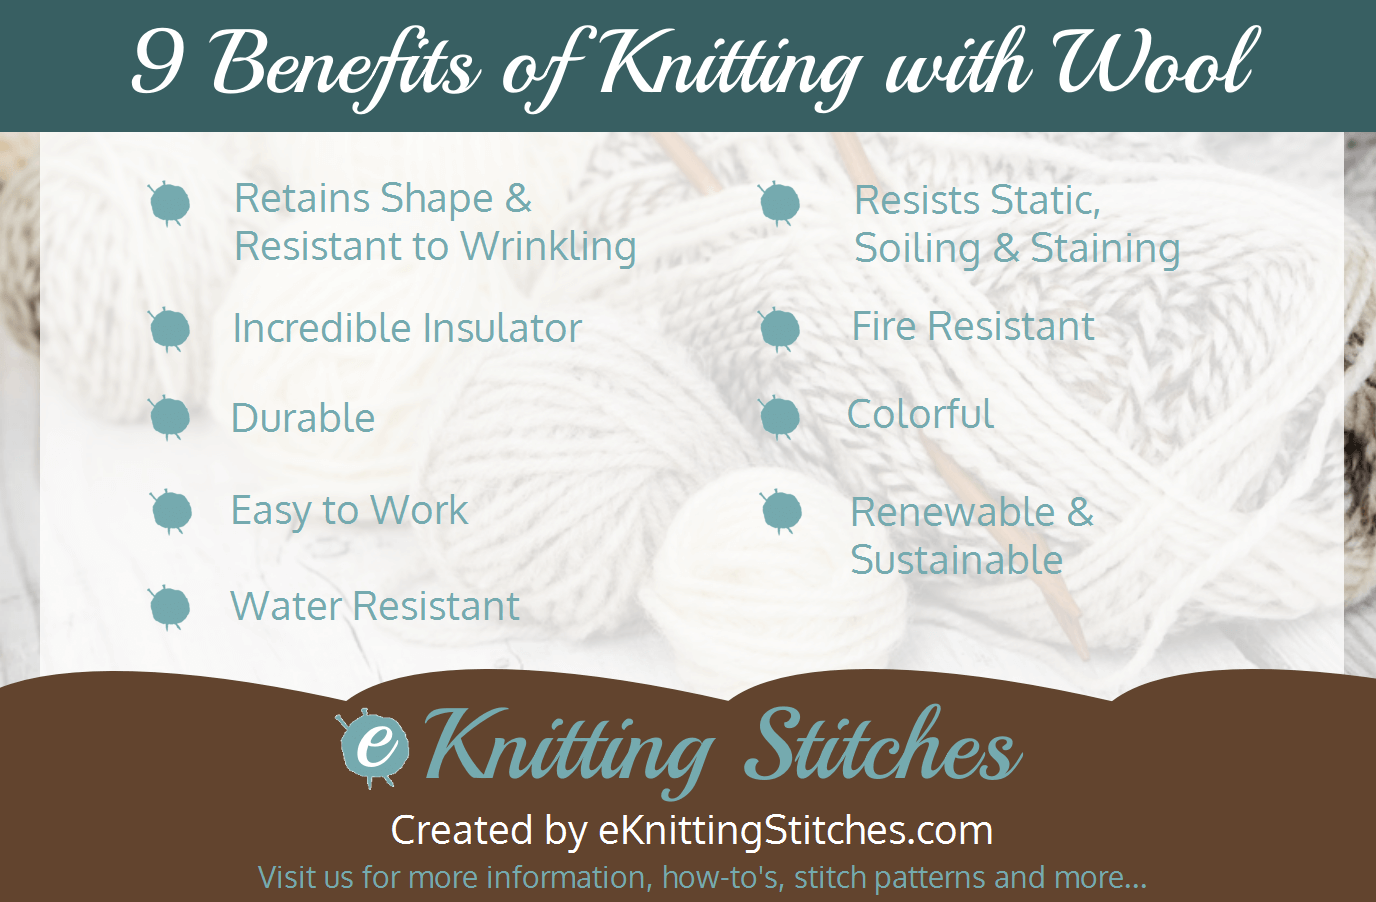 9 Benefits of Knitting with Wool